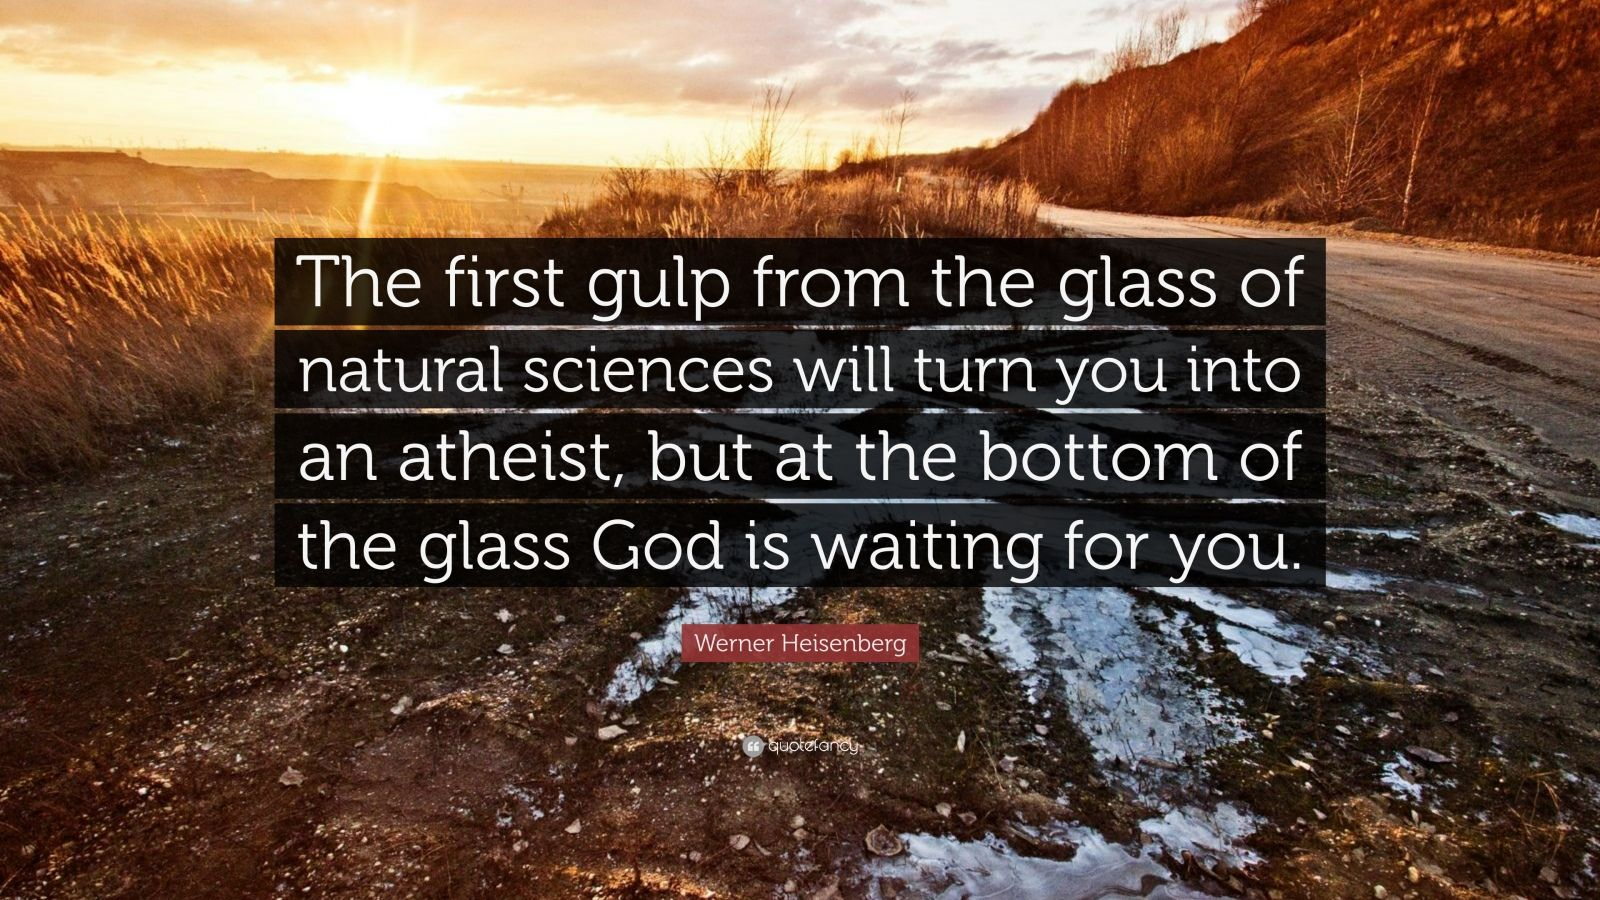 """Werner Heisenberg Quote: """"The first gulp from the glass of natural sciences will turn you into an atheist, but at the bottom of the glass God is waiting for you."""""""